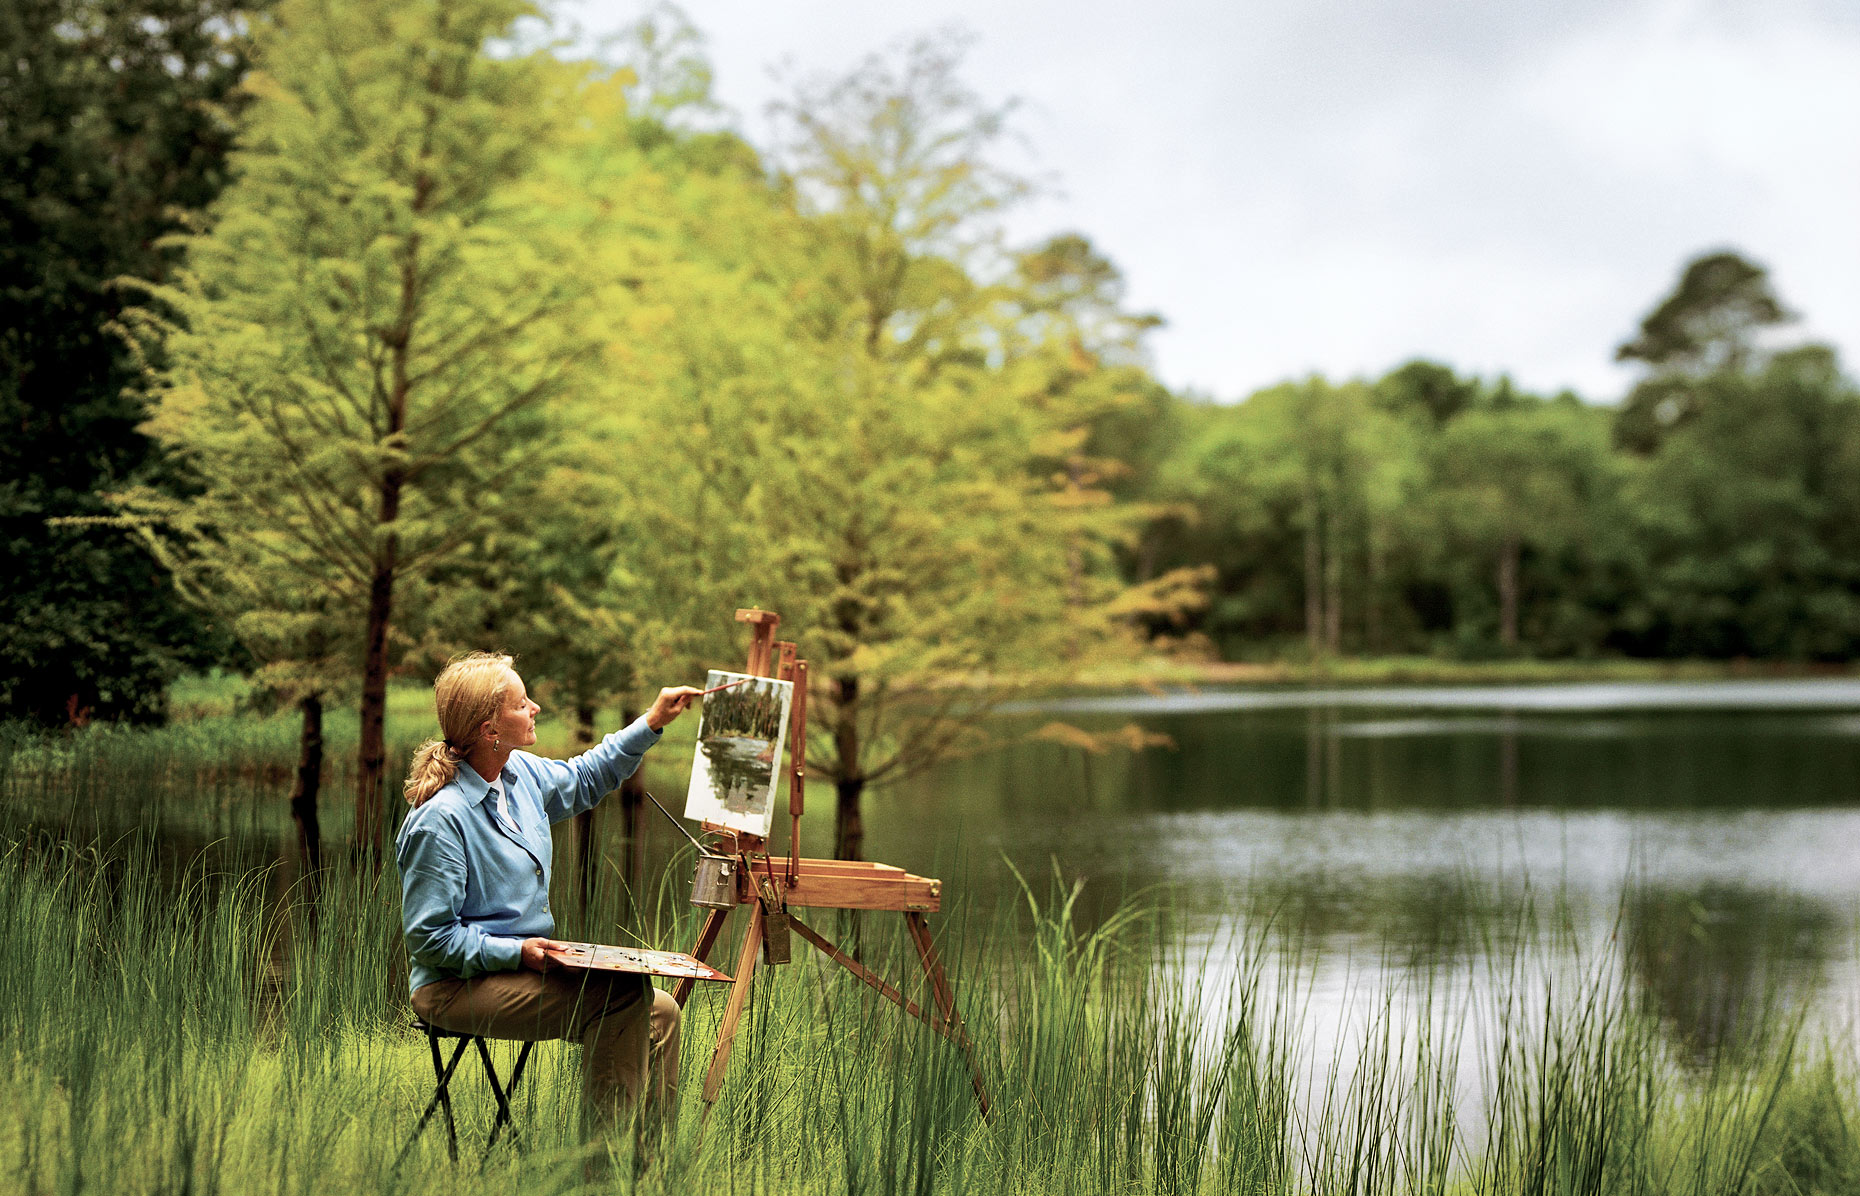 Woman Painting a Landscape - Sea island Resort